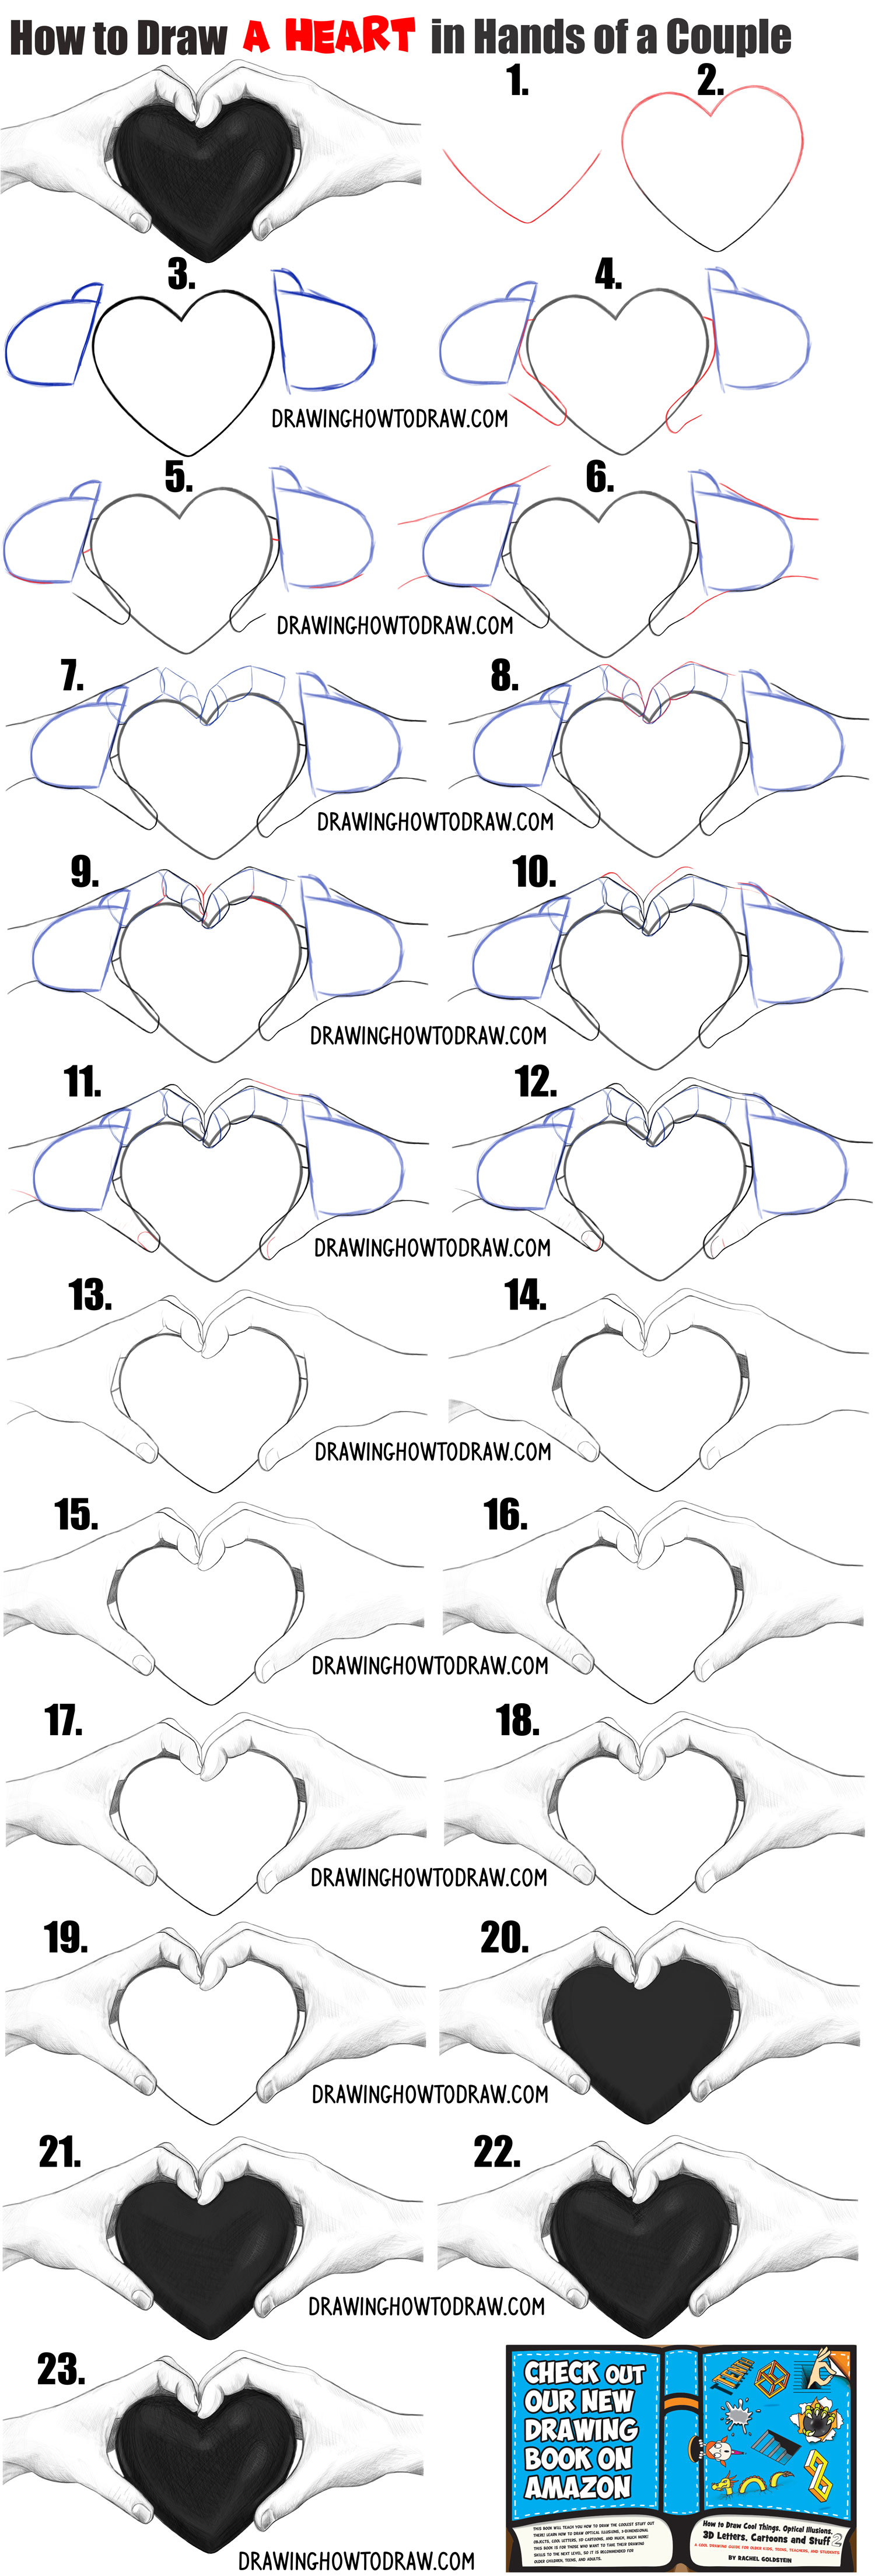 draw 2 realistic hands holding a 3d heart drawing tutorial